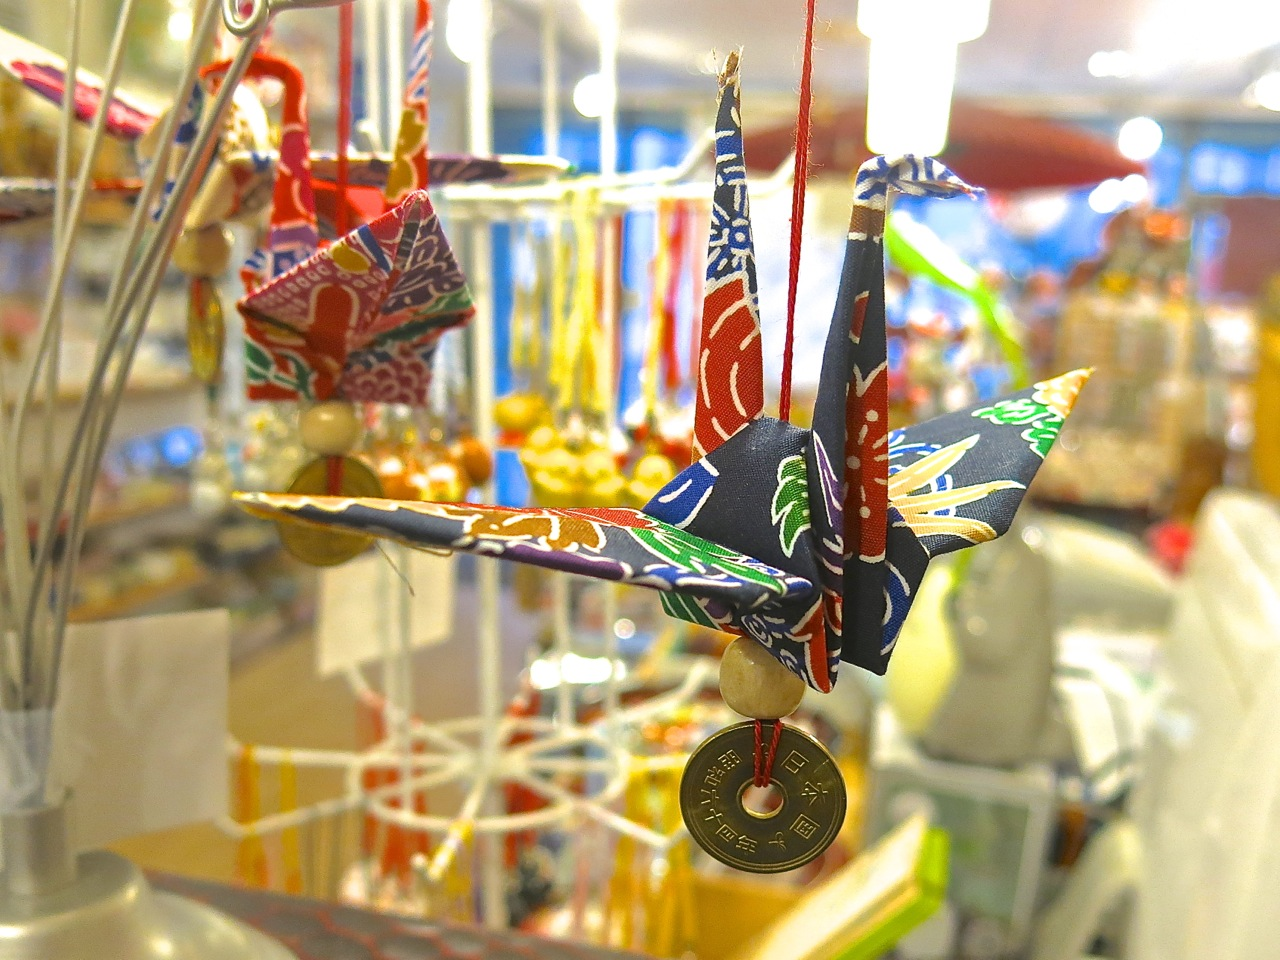 A crane ornament to display in your home or office.